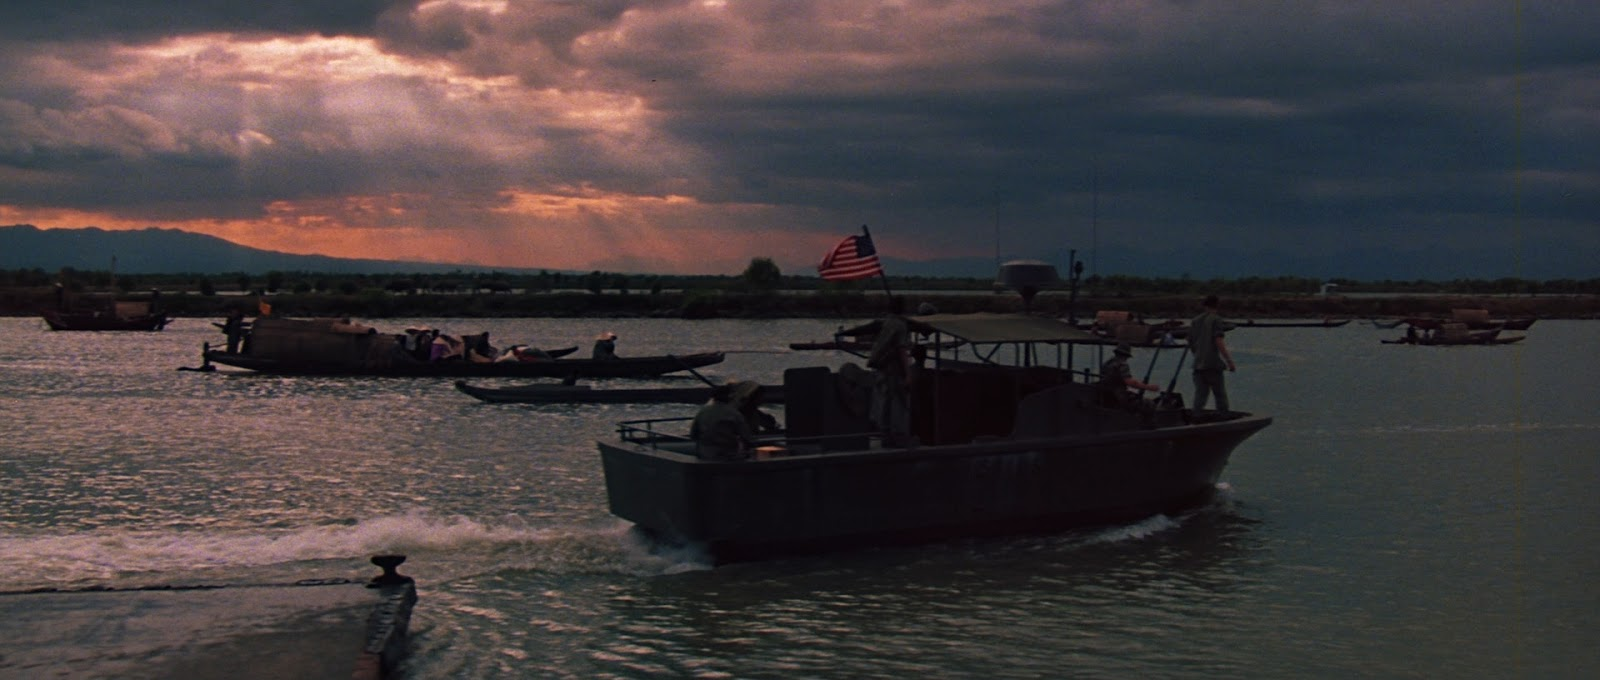 amateur critic society francis ford coppola s apocalypse now coppola was convinced by joseph conrad s heart of darkness that the book was an appropriate template in which to construct his anti vietnam war critique